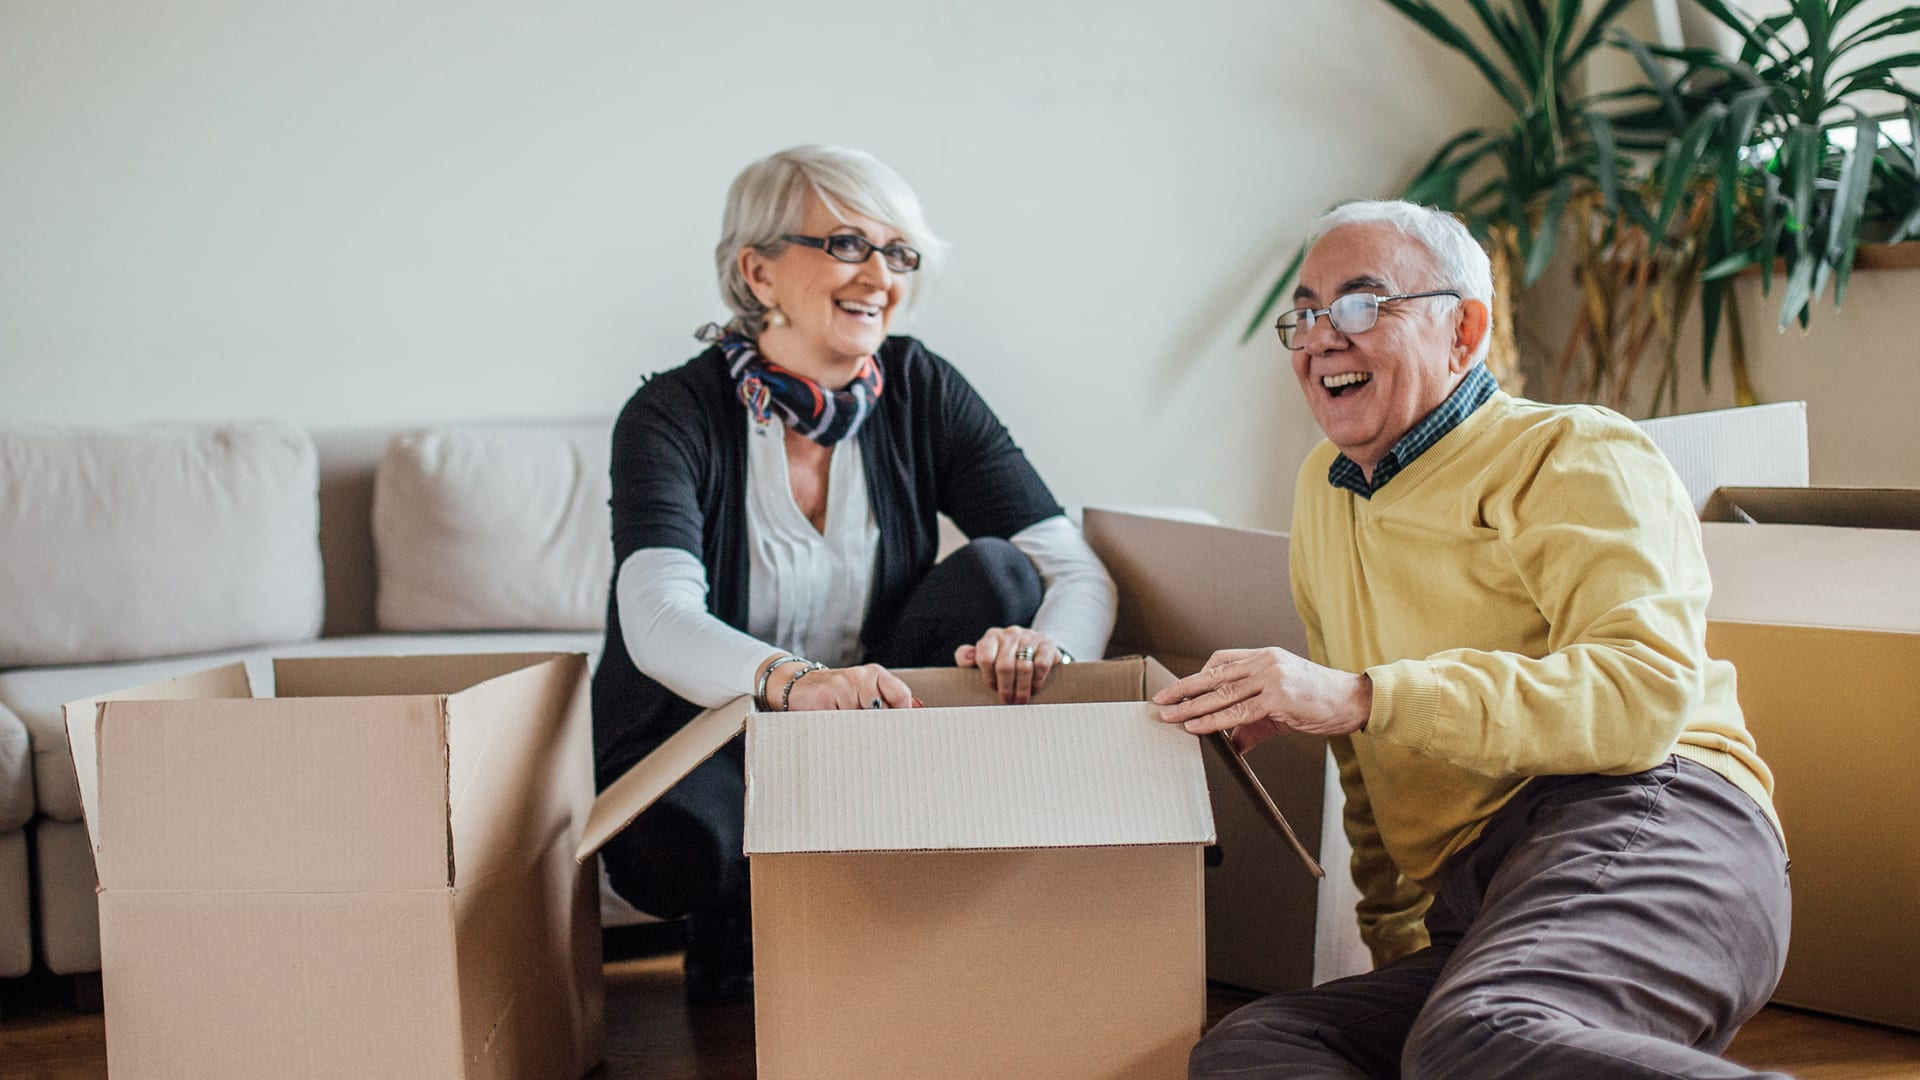 Want to Live Longer? Maybe You Should Move, New MIT Study Suggests